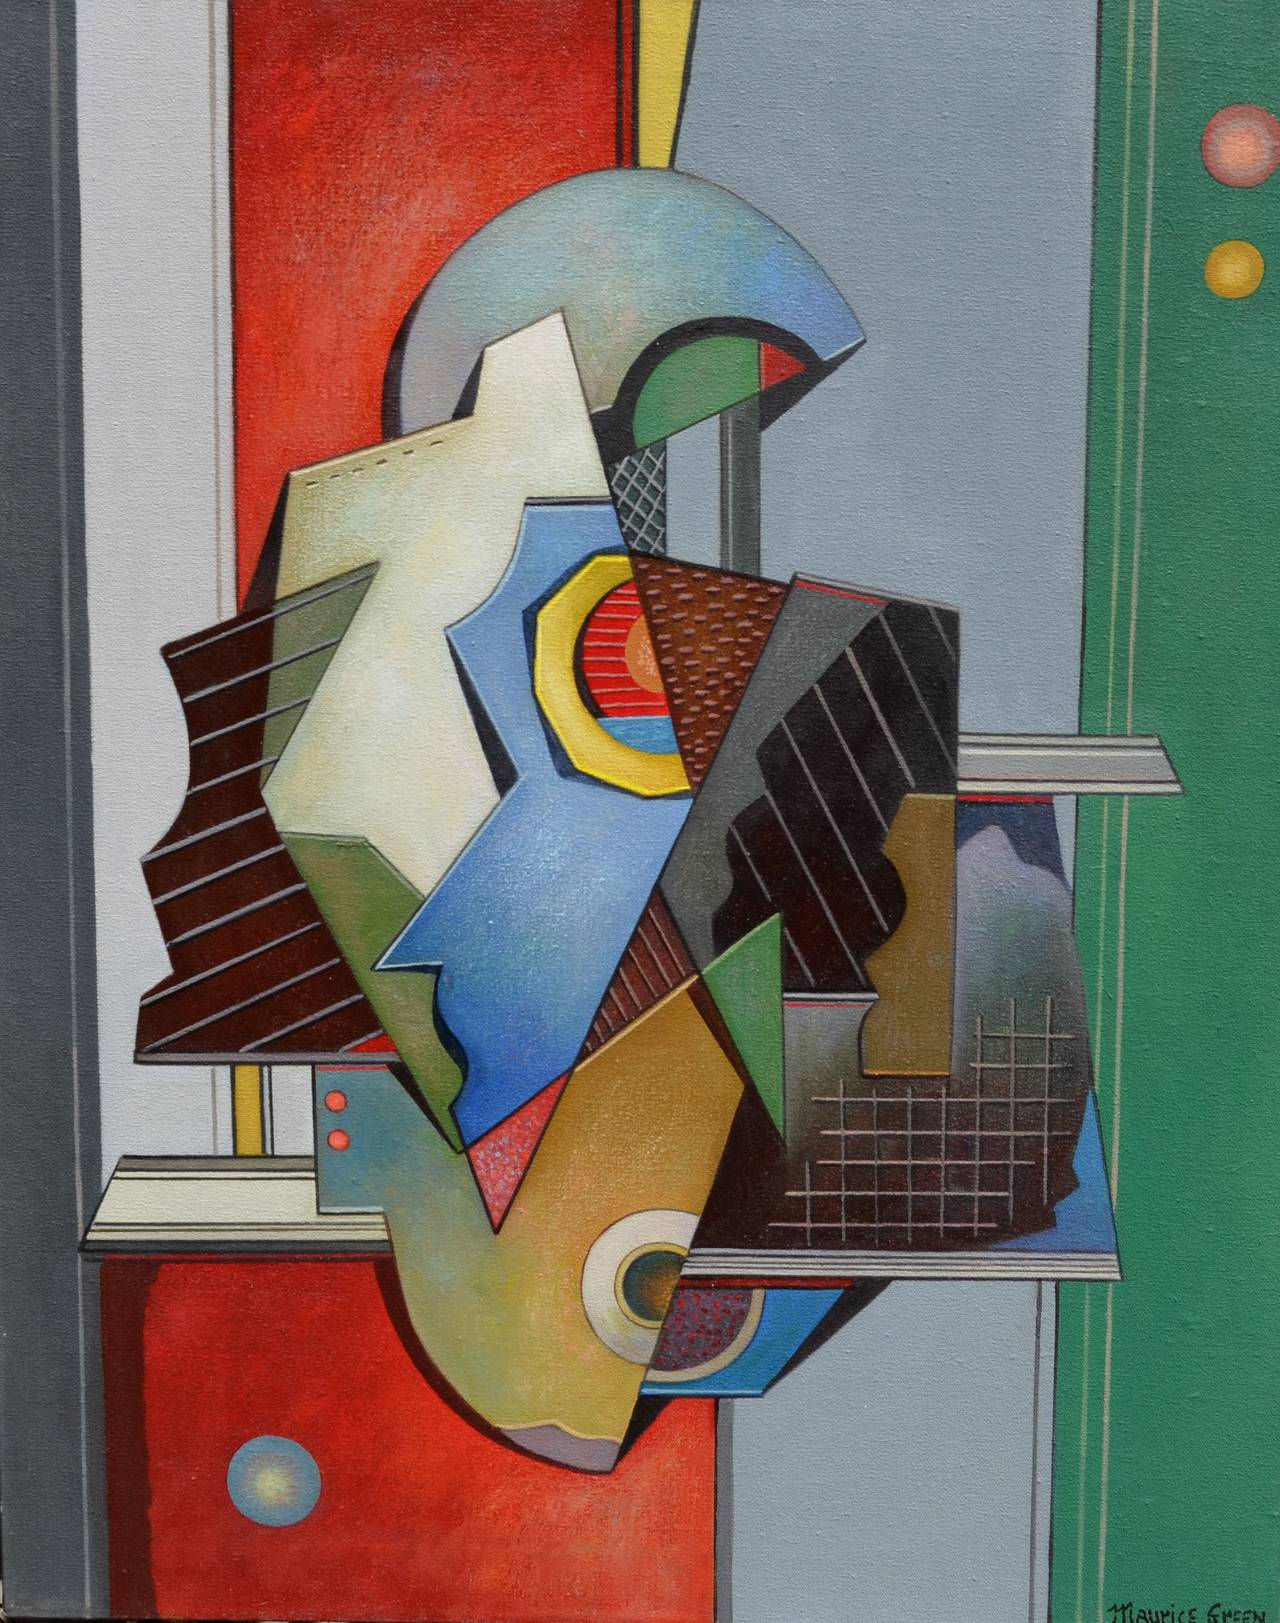 Maurice Green, Cubist Abstract in Green, 1970